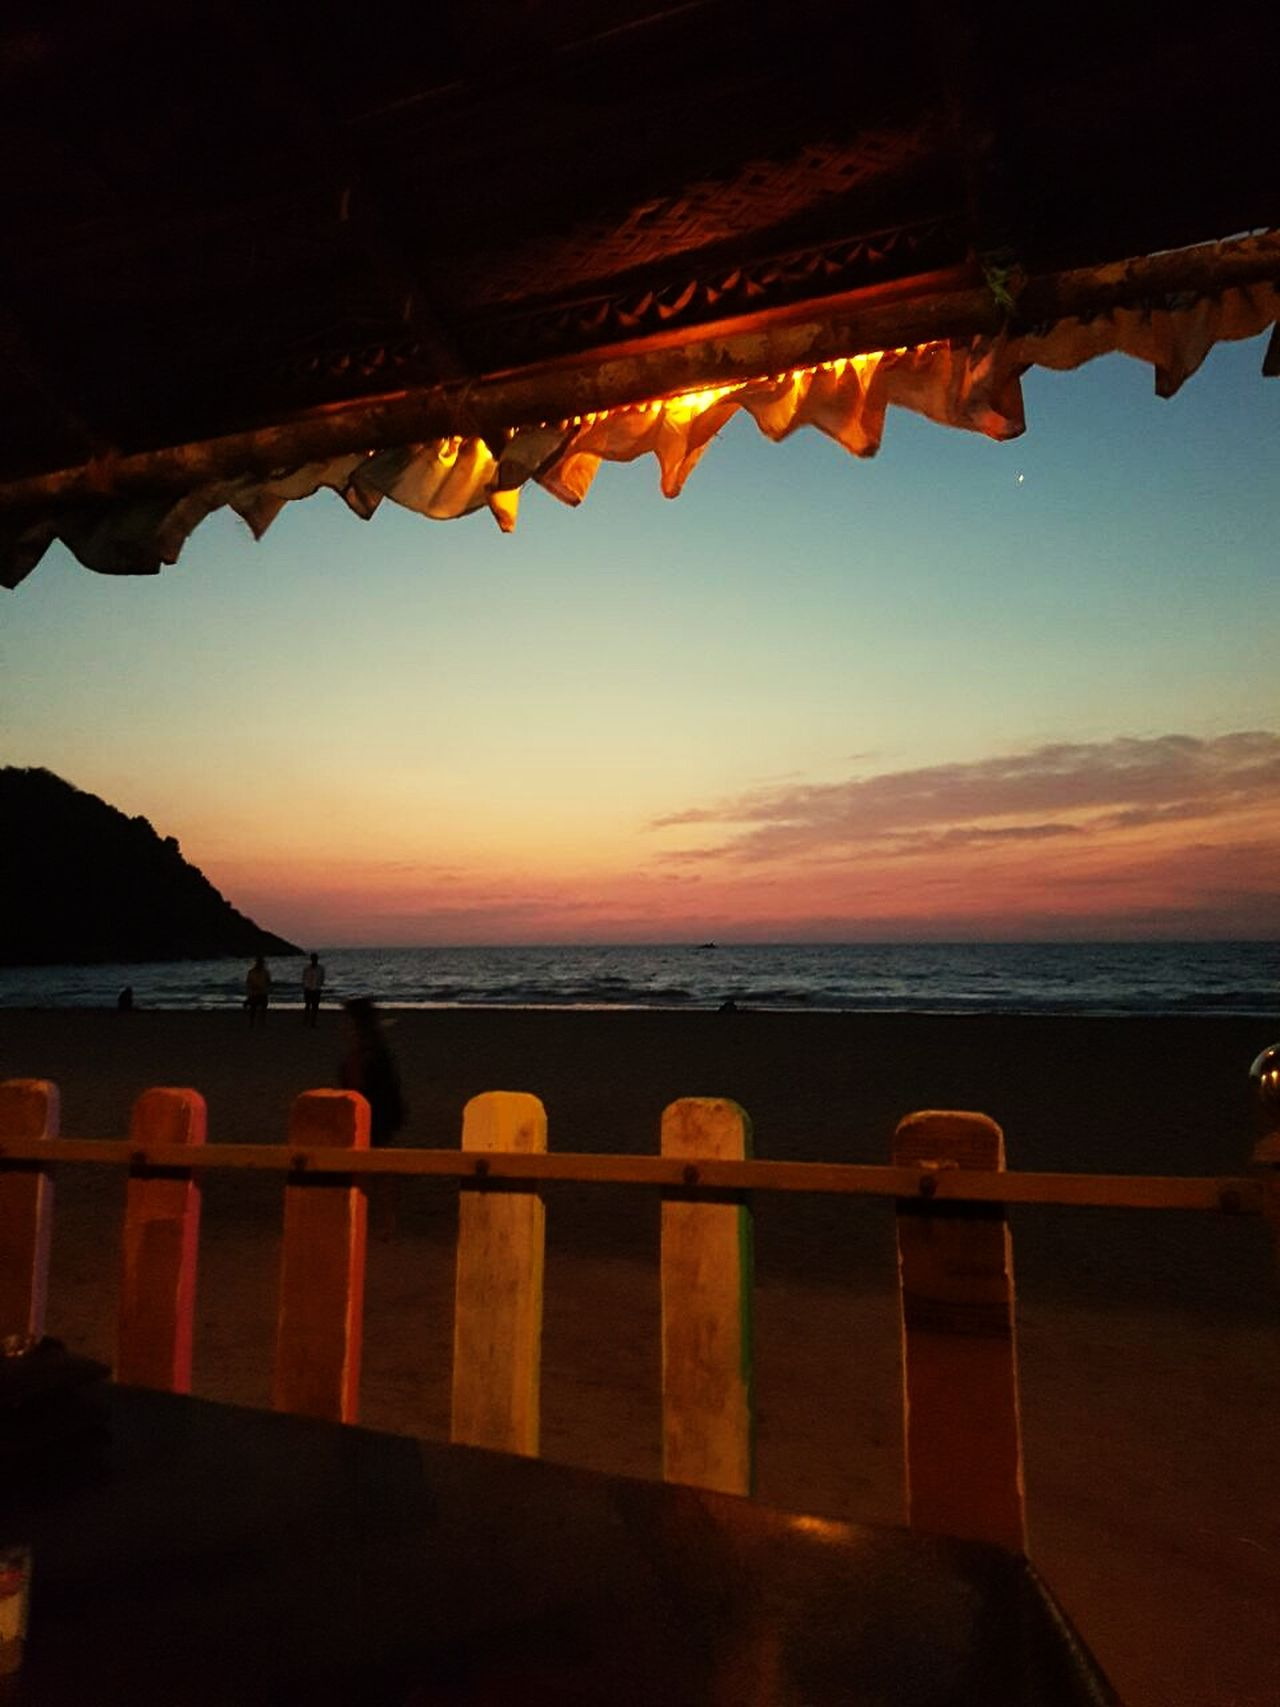 Lit sunsets. Gokarna beach .Sunset Sea Beach Travel Destinations Travel Horizon Over Water No People Landscape Outdoors Water Multi Colored Sand Mountain Scenics Day Nature Architecture Sky Astronomy Coloursofindia Travelingram Relaxing Moments Eyeem Market Indiabeaches Food And Drink The Great Outdoors - 2017 EyeEm Awards EyeEmNewHere